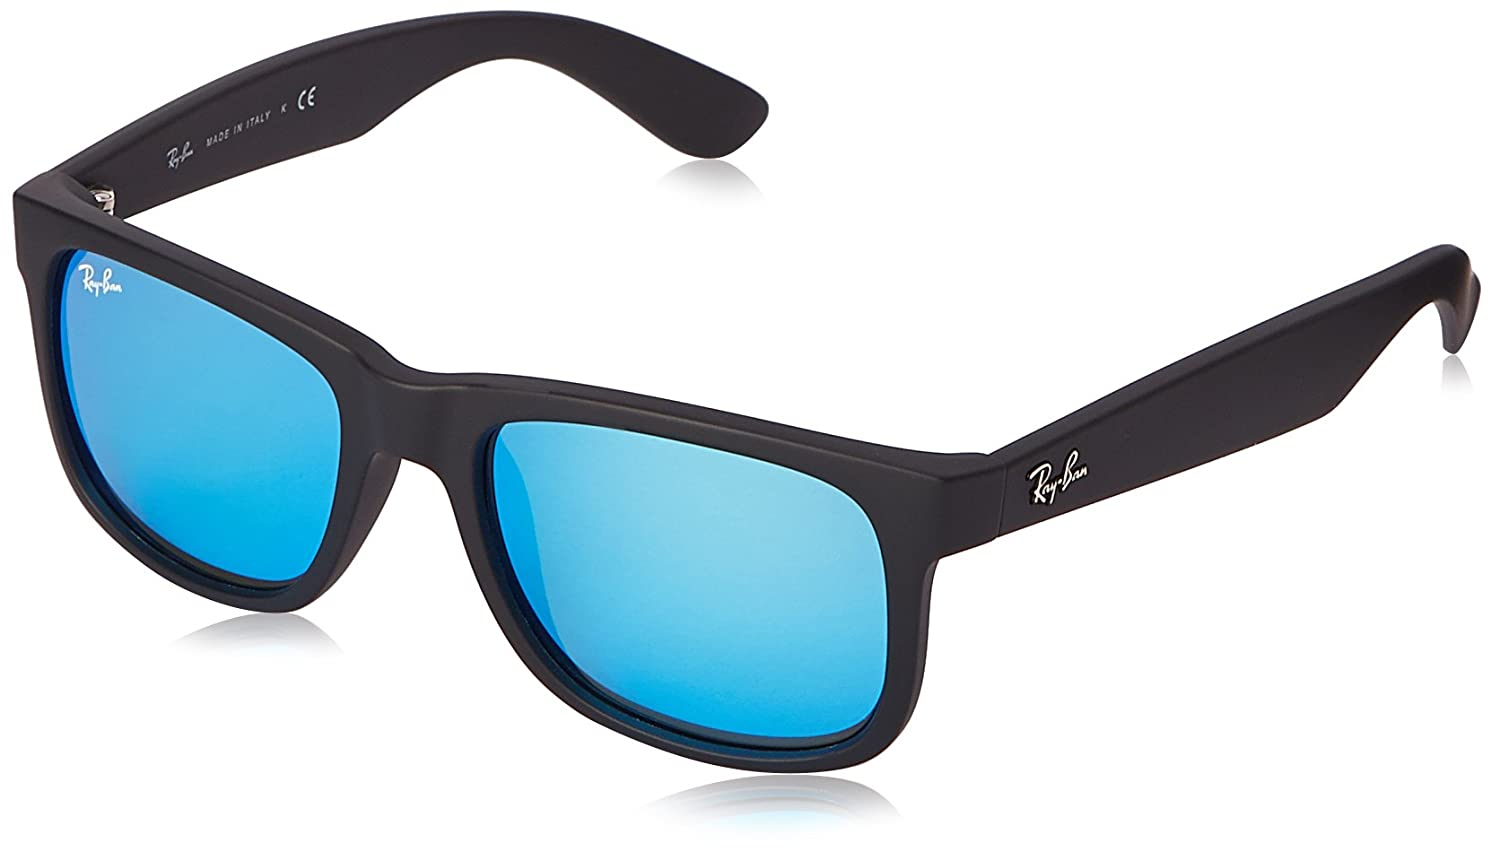 79c5cf67dbd Amazon.com  Ray-Ban Justin Non-Polarized Sunglasses